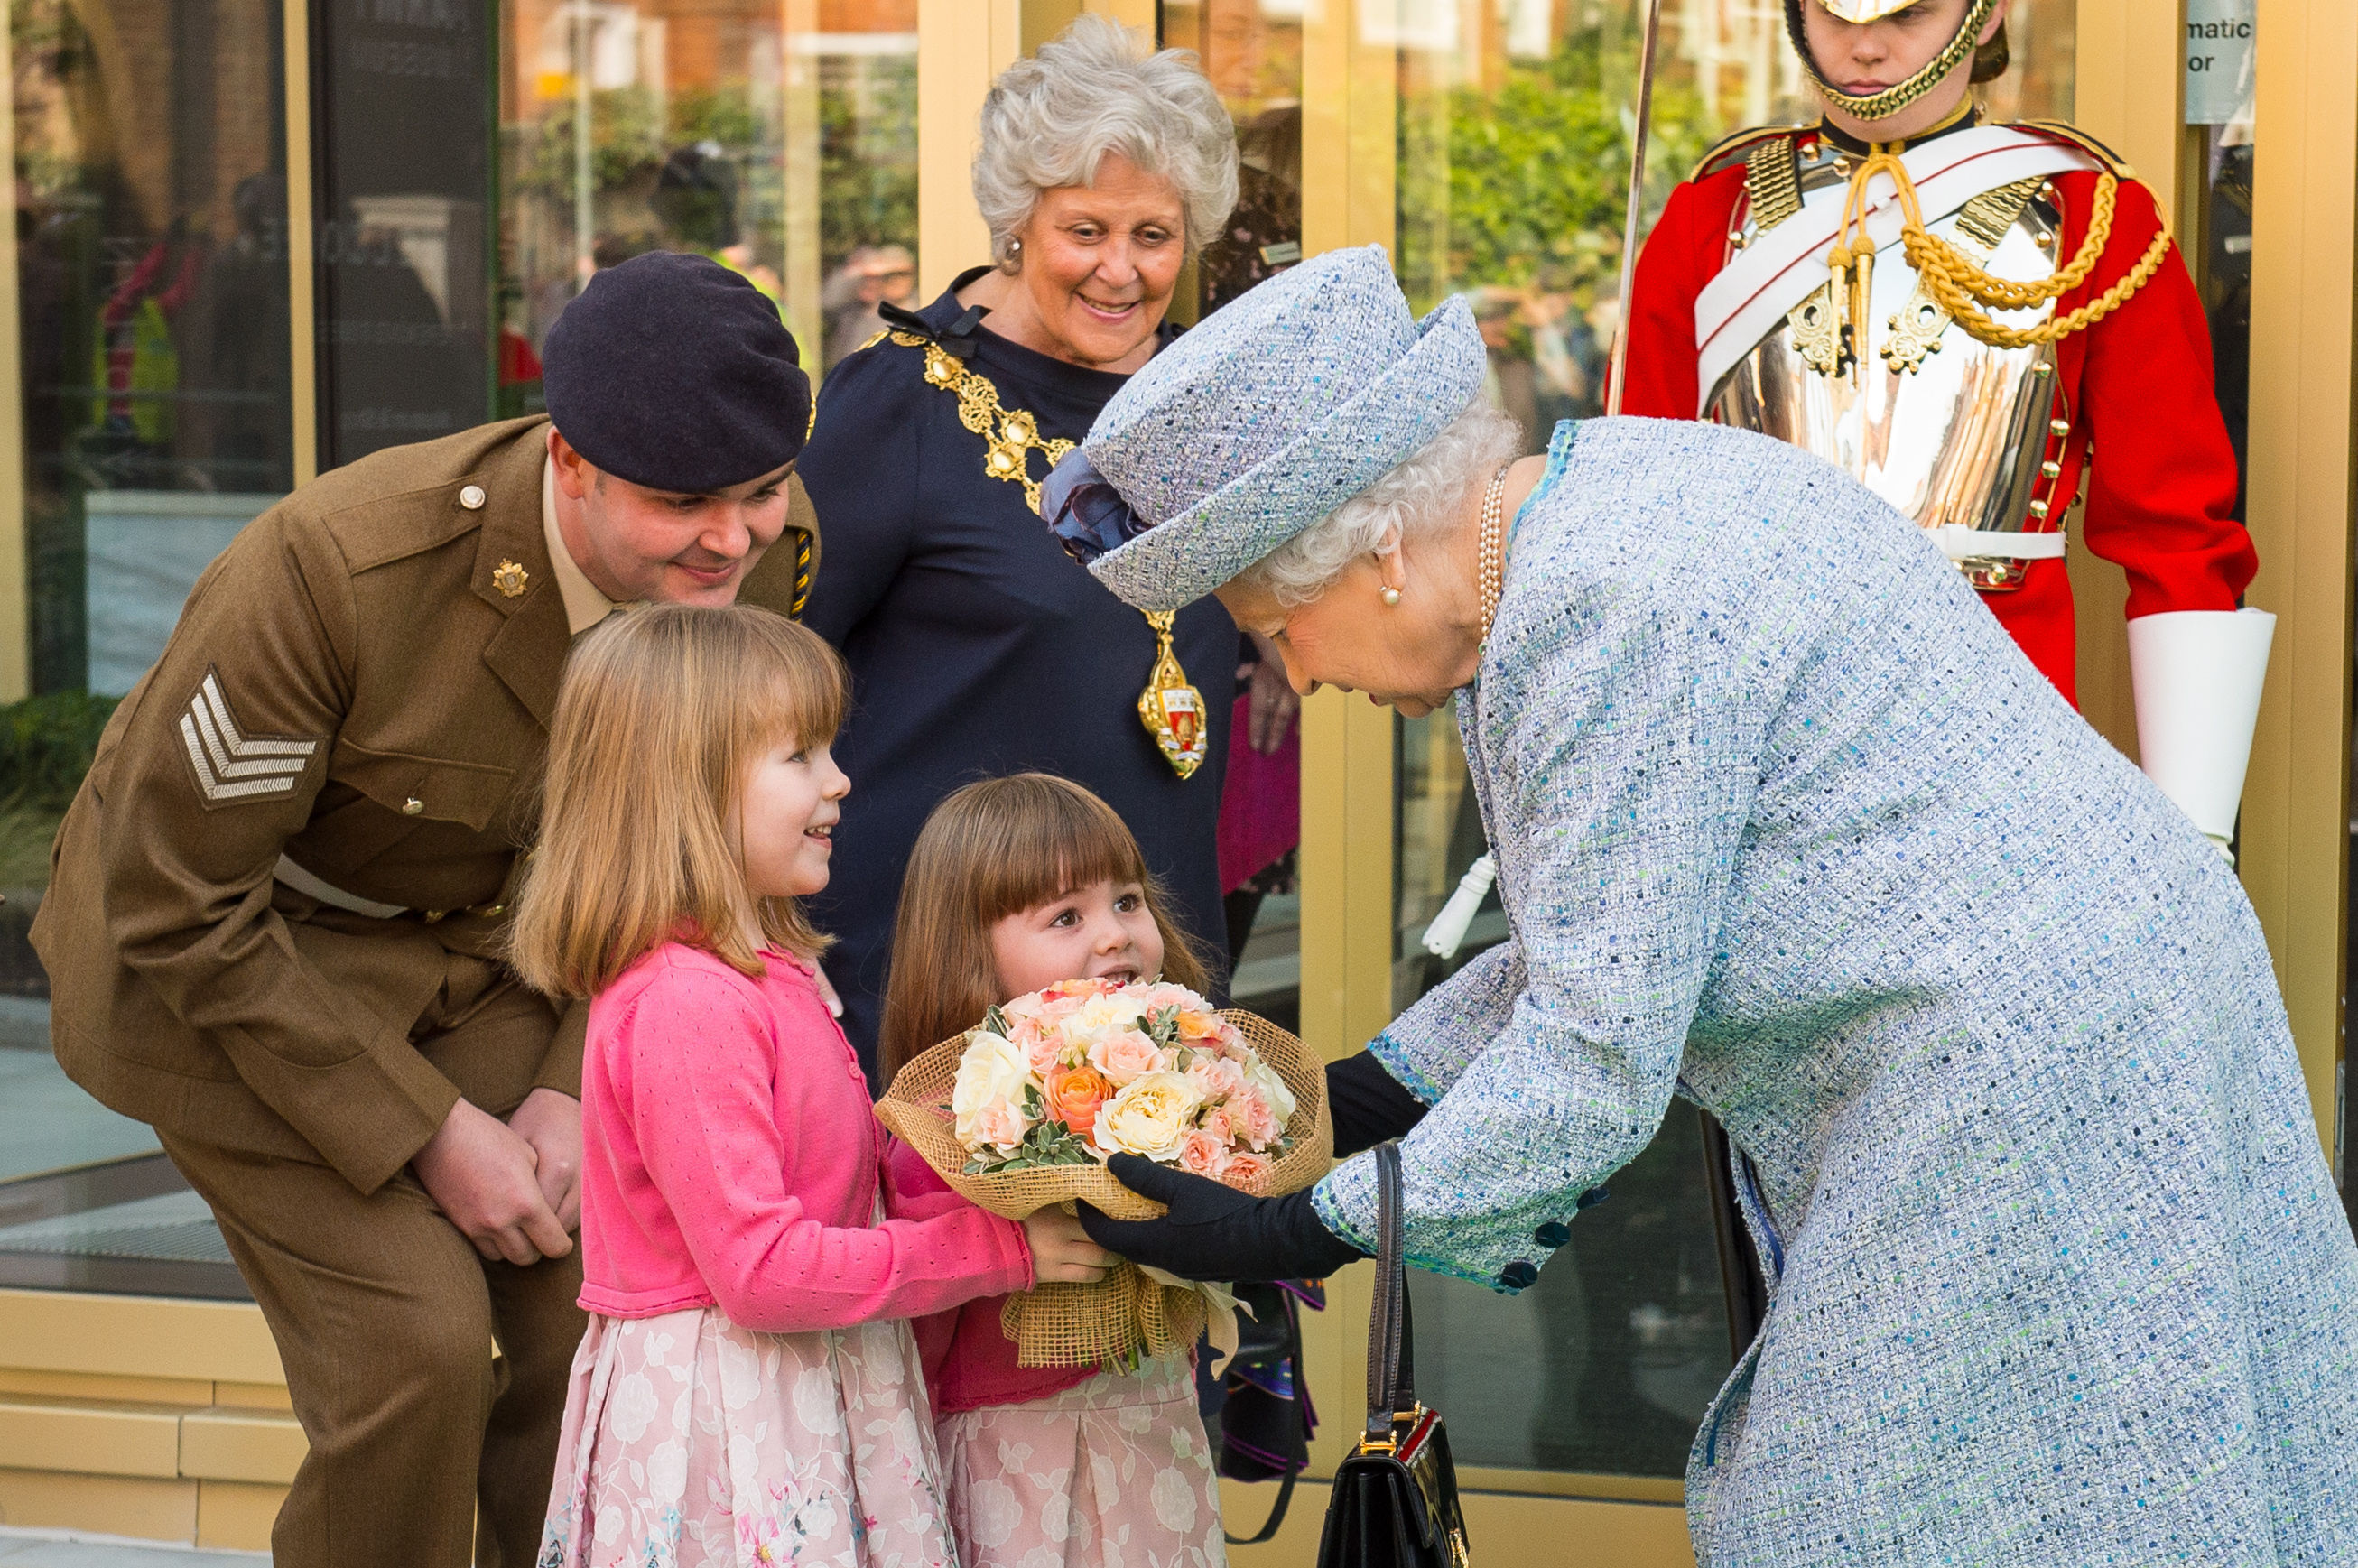 The Queen is presented with a posy after reopening the National Army Museum